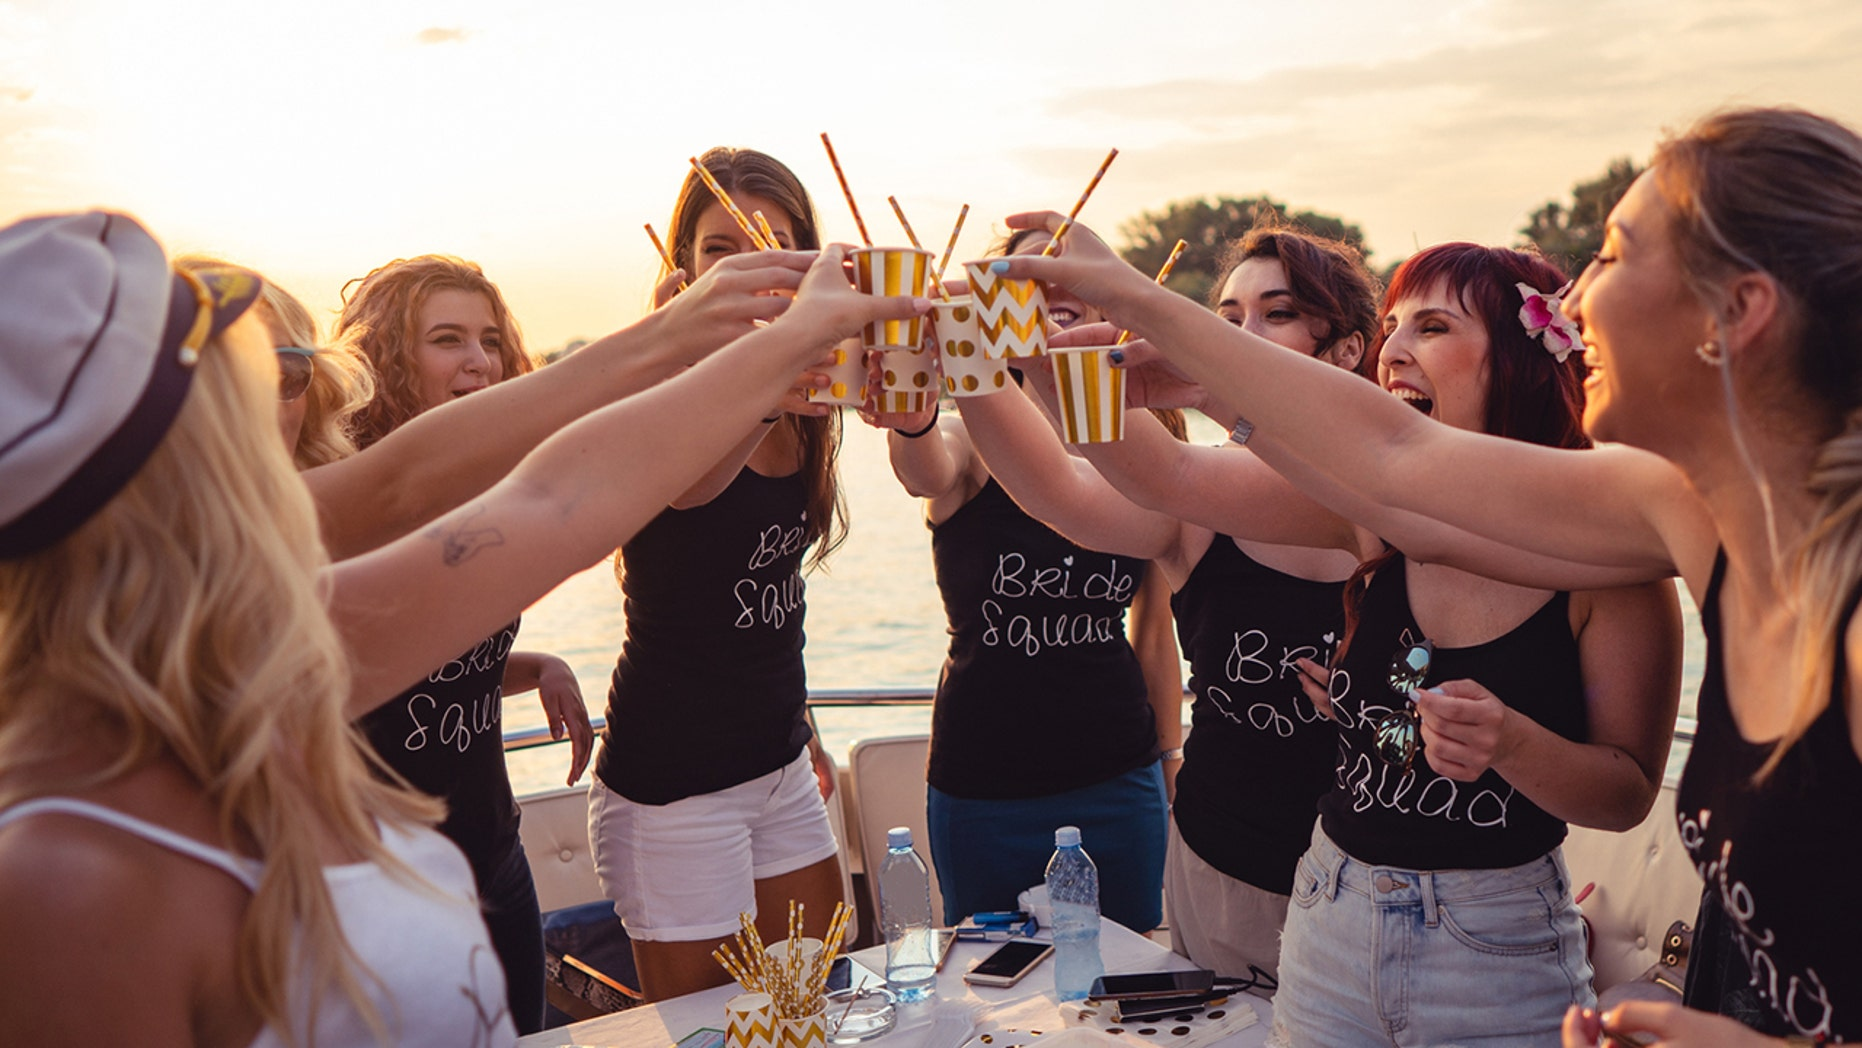 American Airlines Denied Bachelorette Party From Boarding